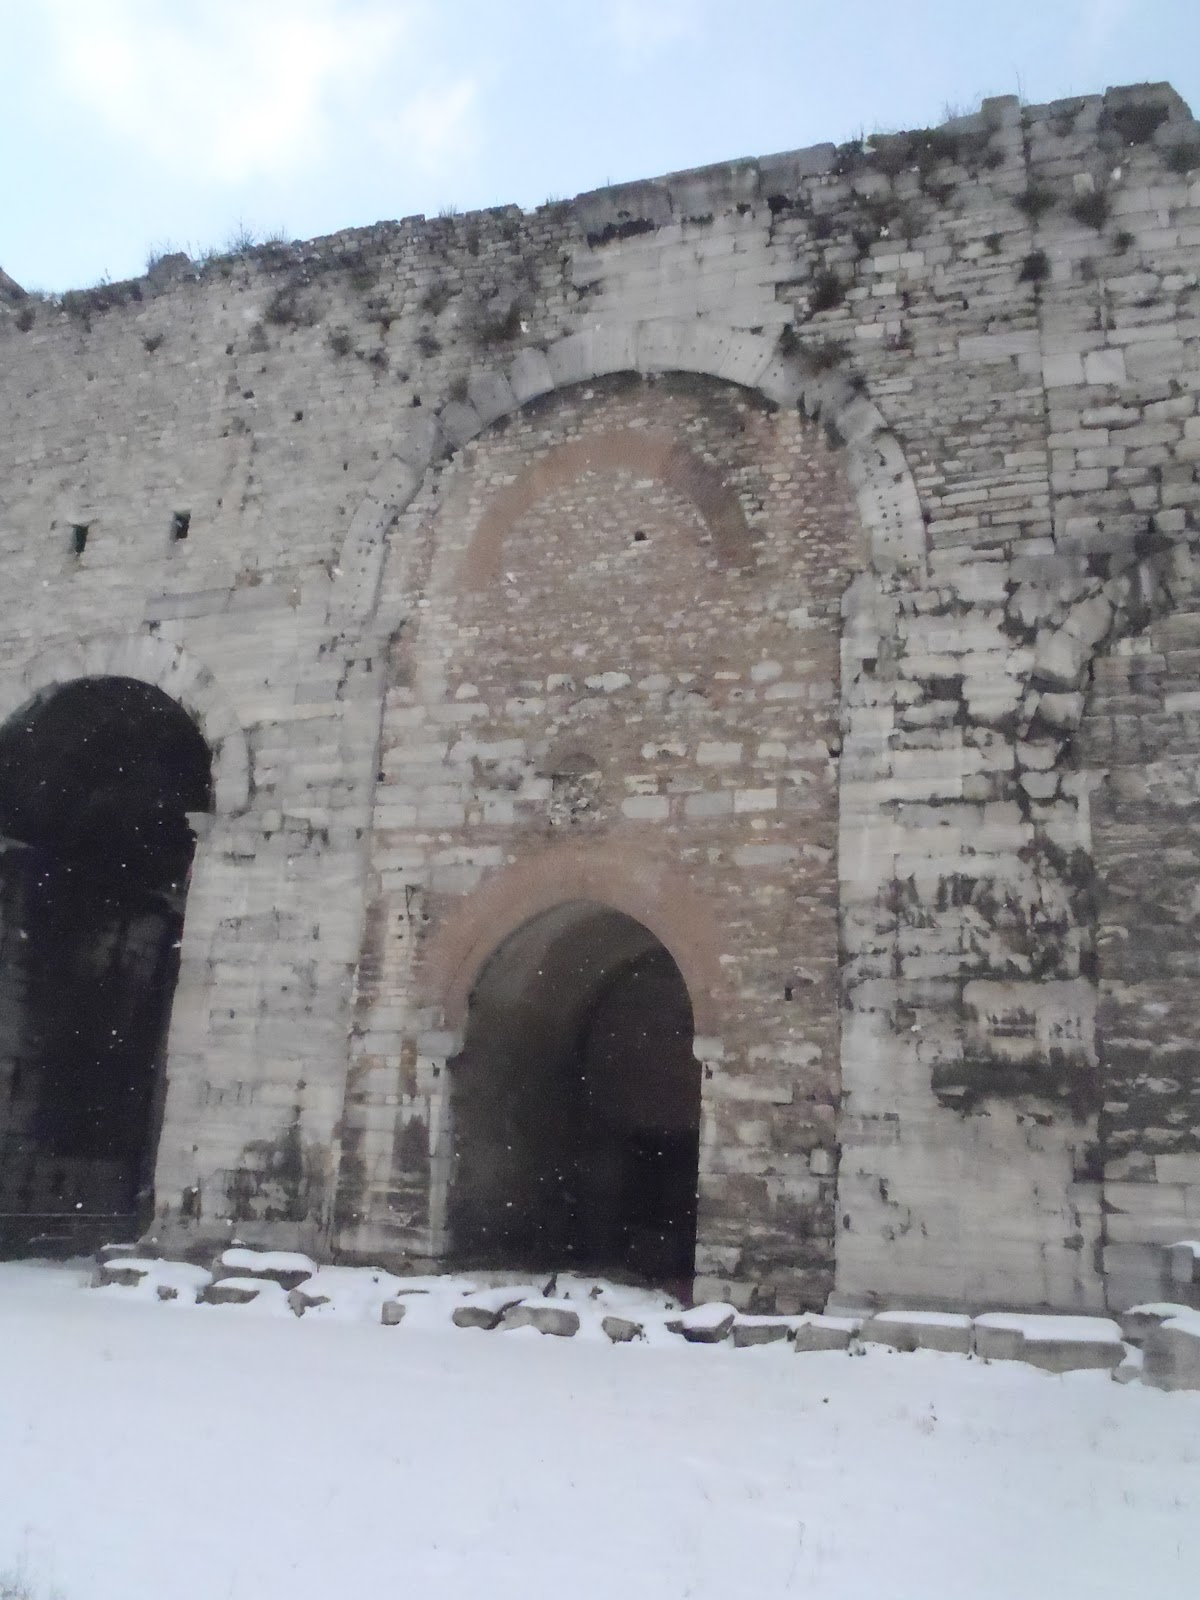 Golden Gate inside the Yedikule Fortress, Inside wall